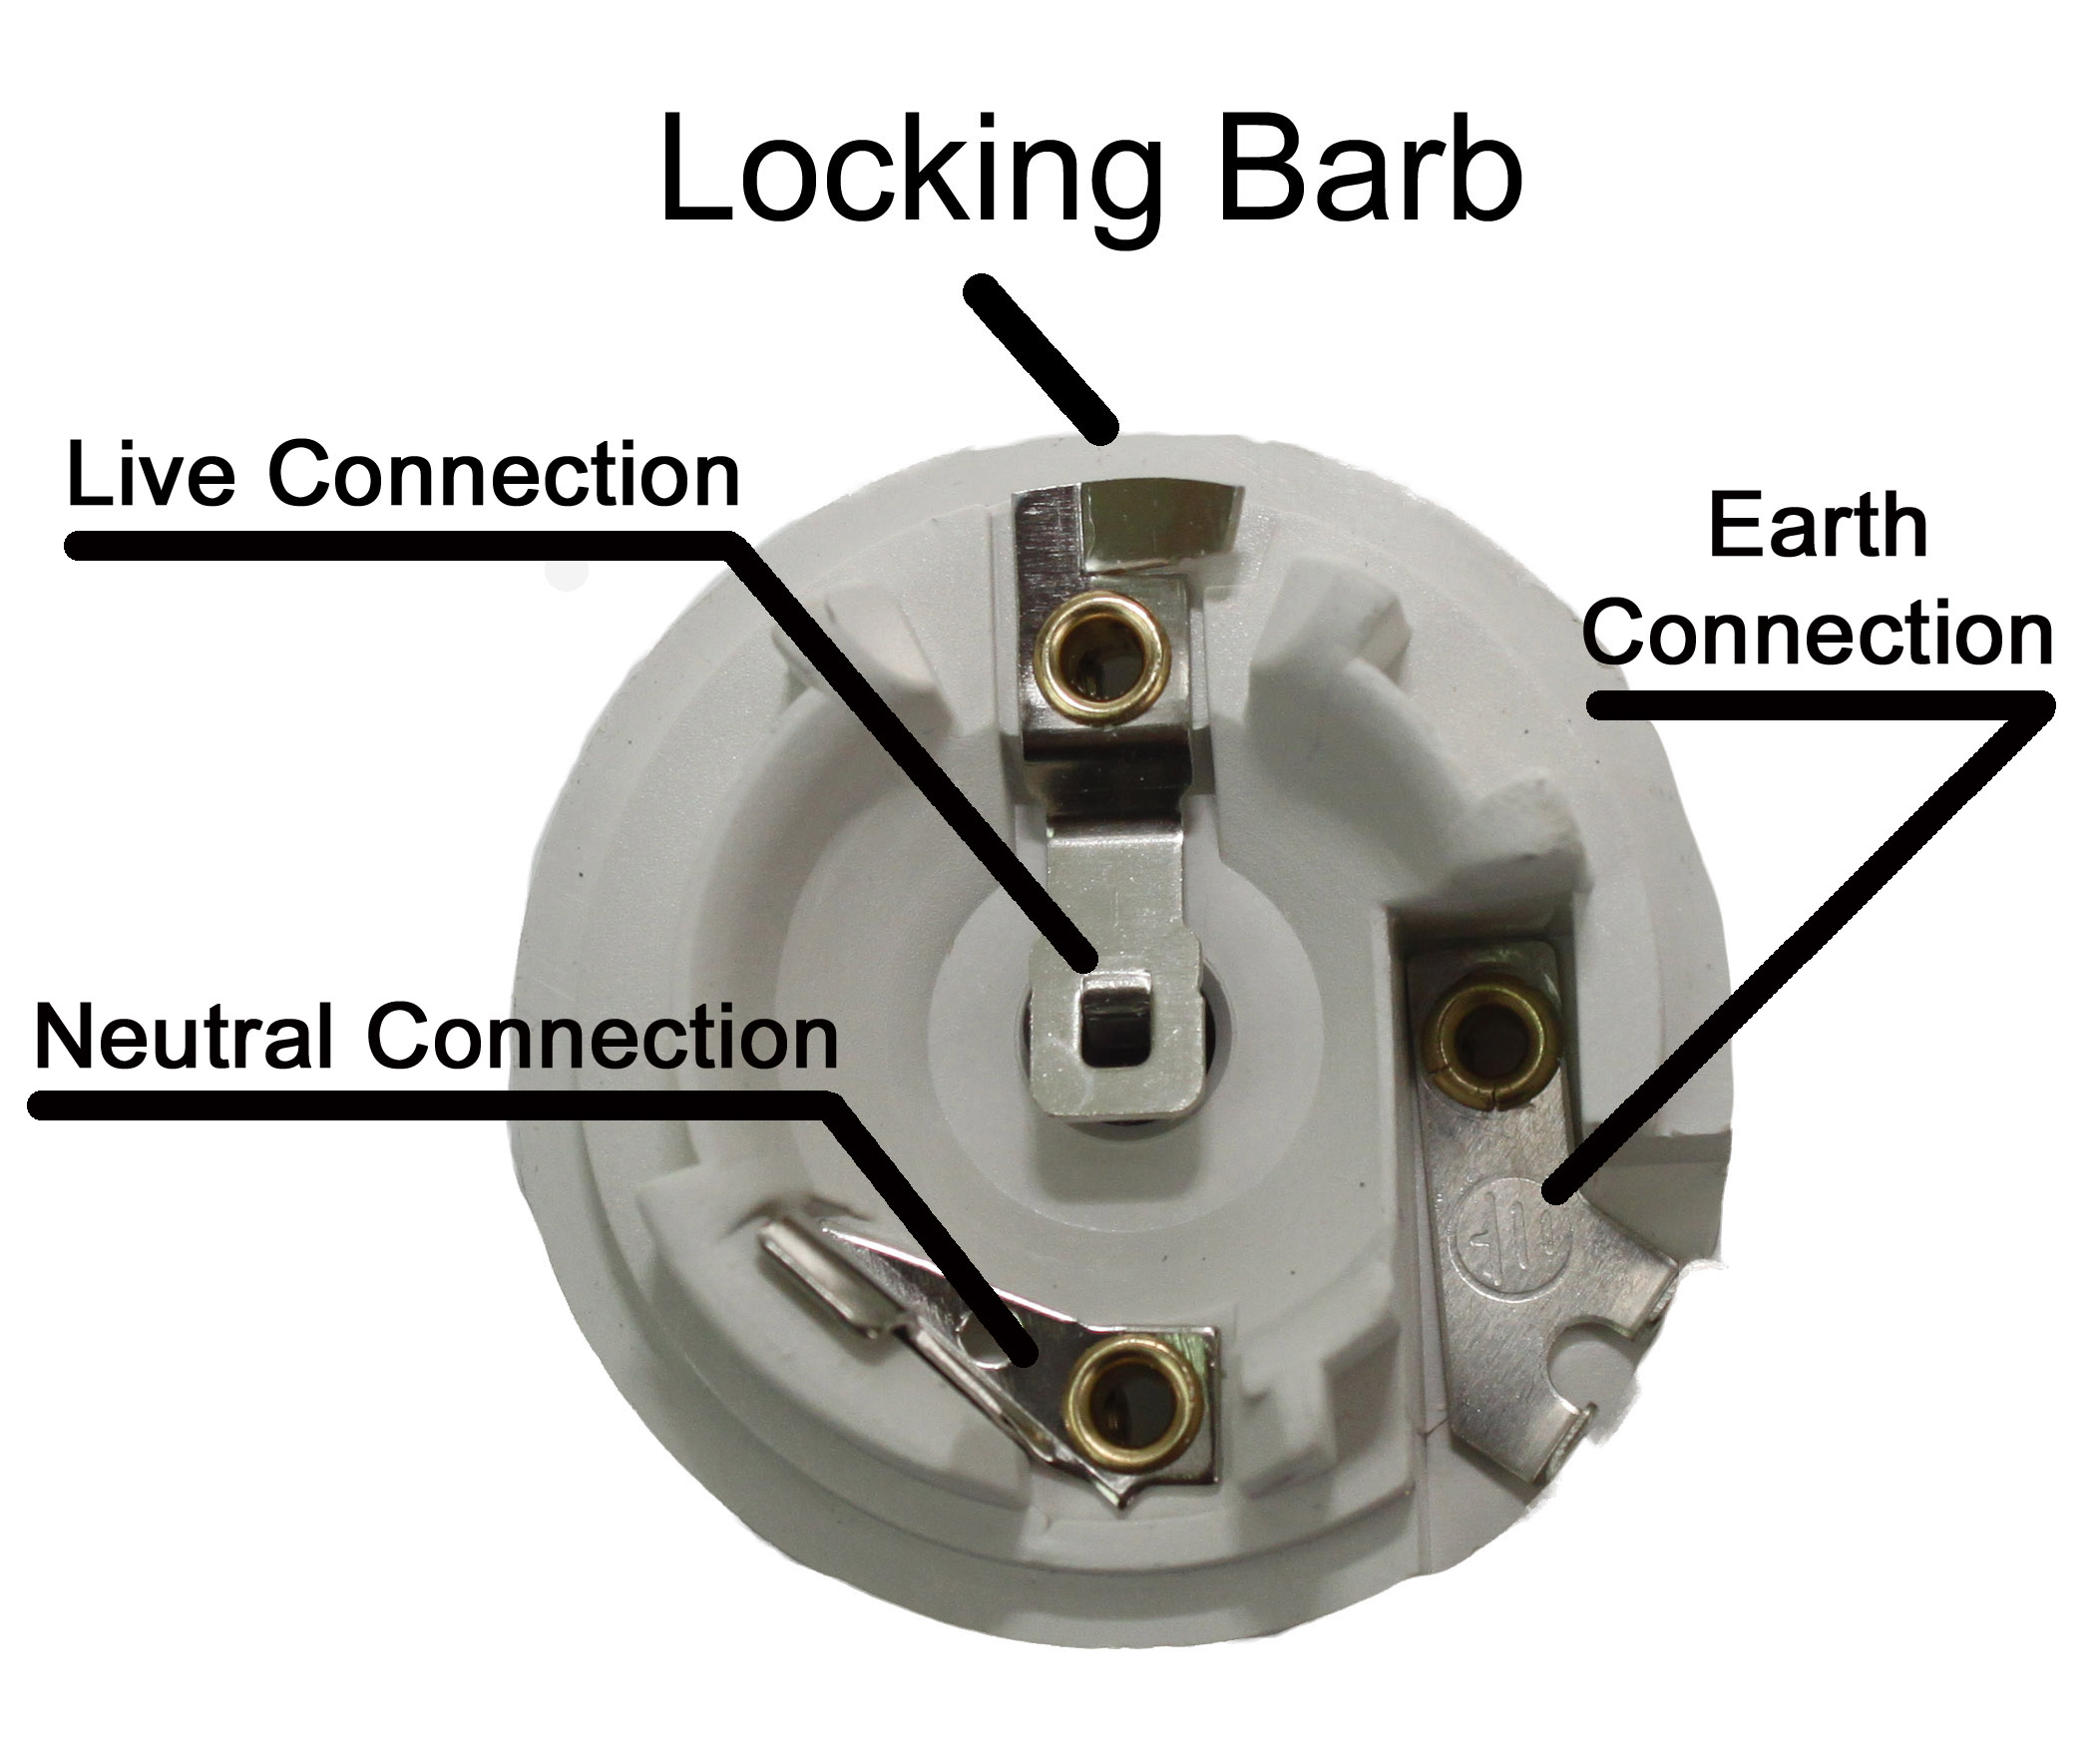 insert with text wiring of a es or e27 screw lampholder batten lamp holder wiring diagram at bakdesigns.co